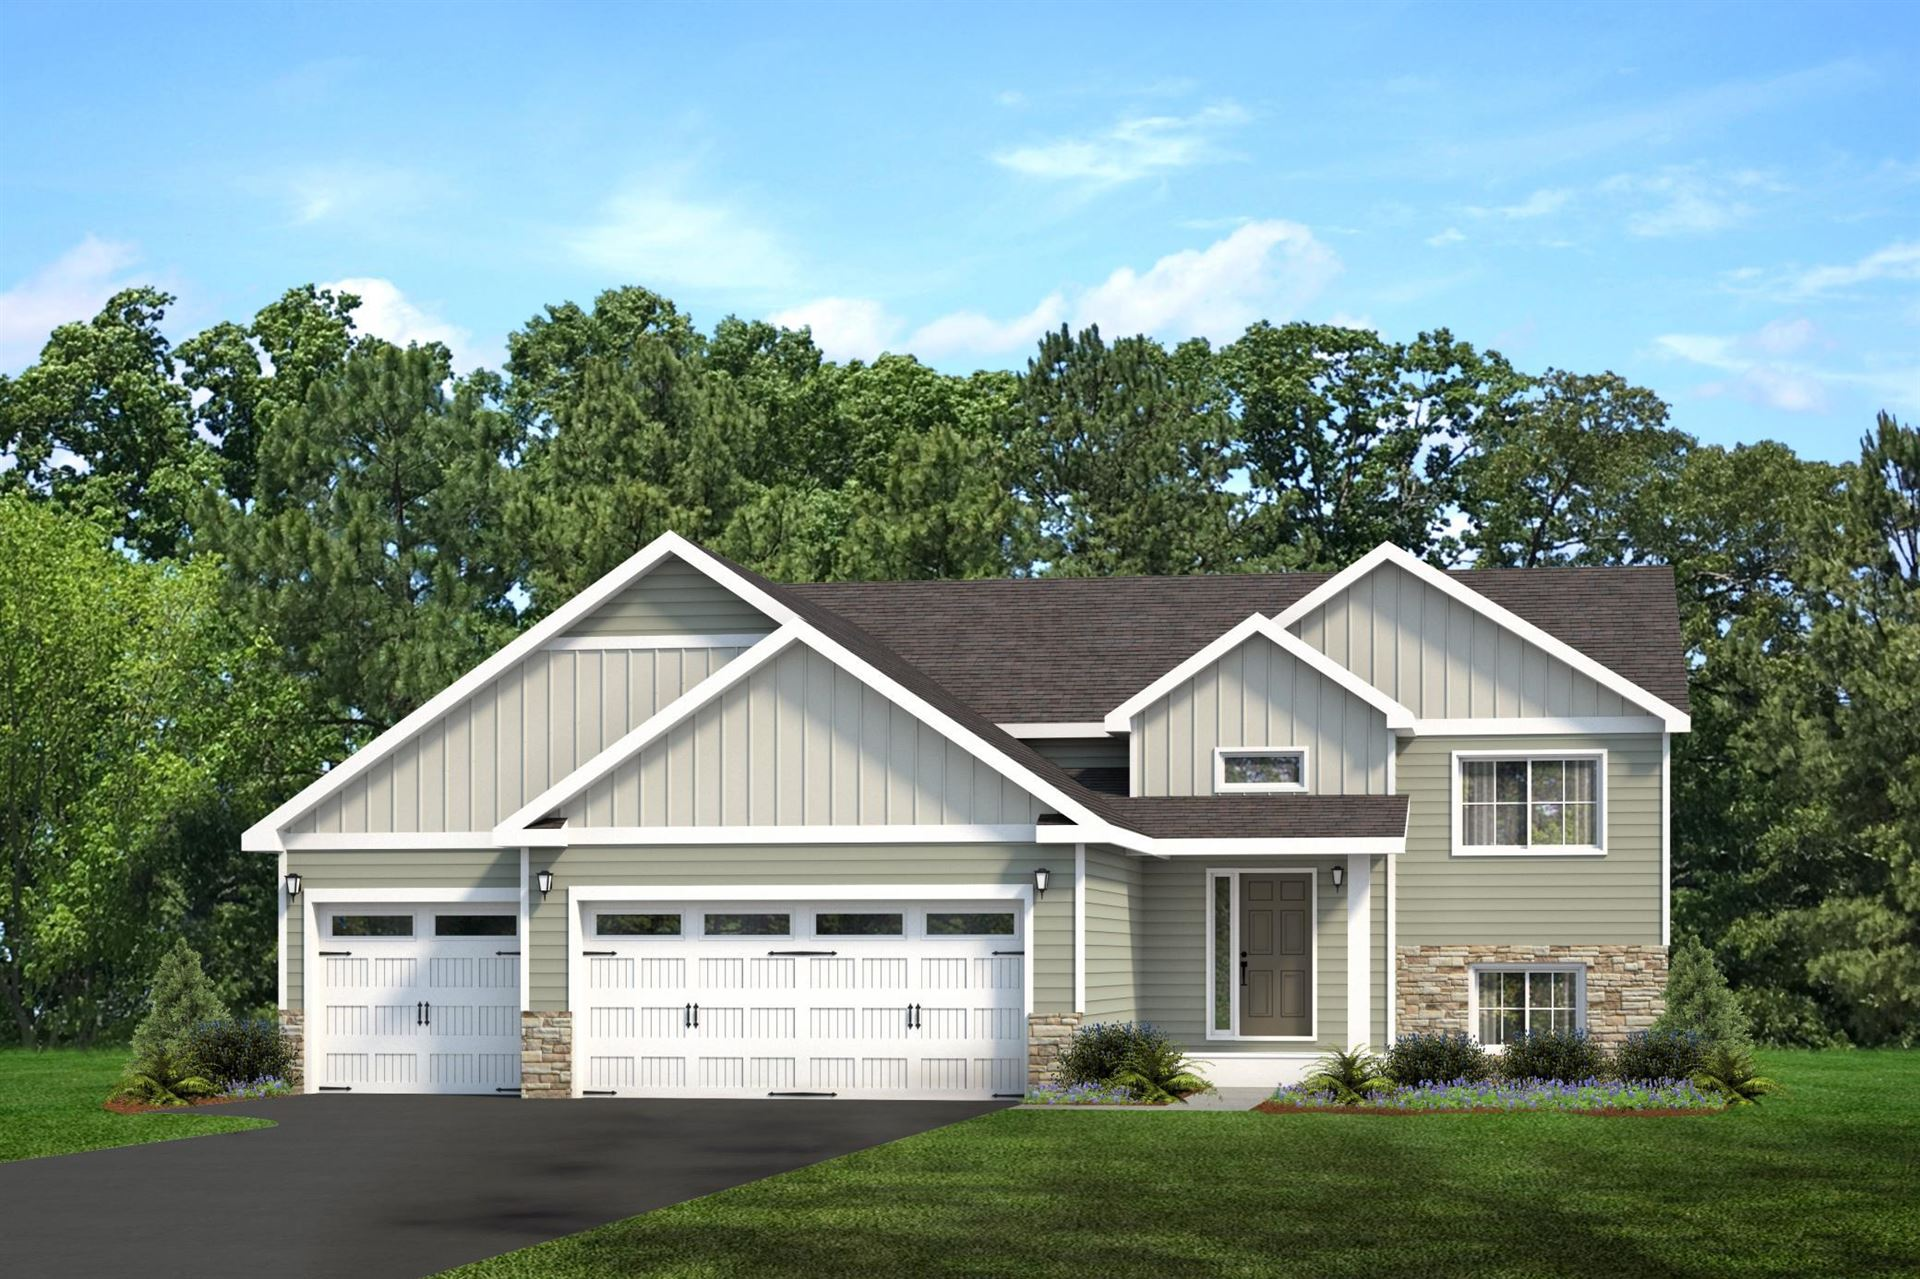 Photo of 219 9th Ave Court NW, Lonsdale, MN 55046 (MLS # 6070472)